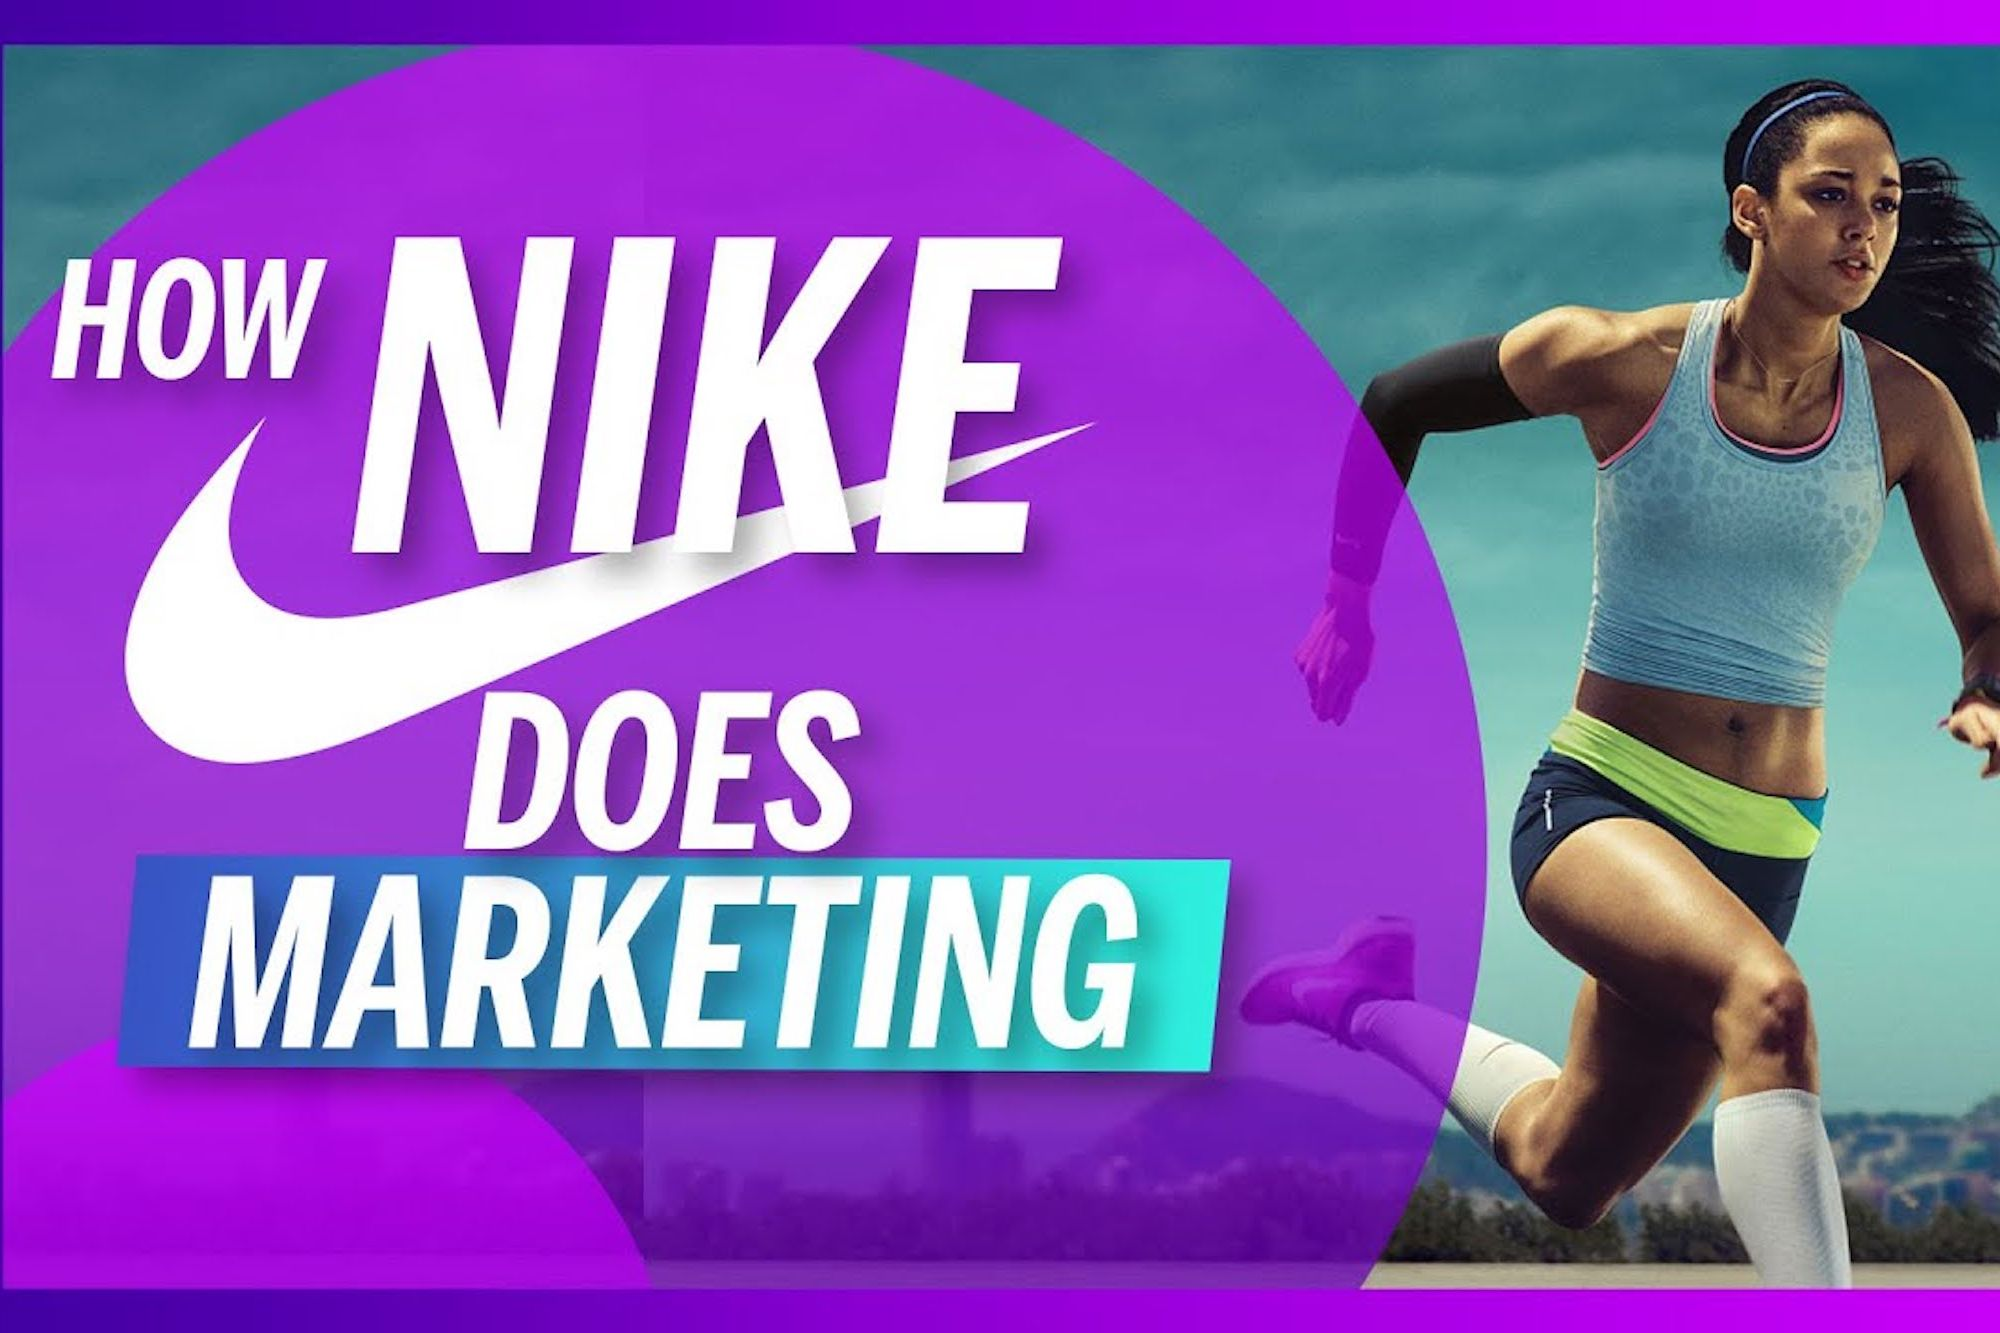 How to follow in Nike's Footsteps when Marketing your Business